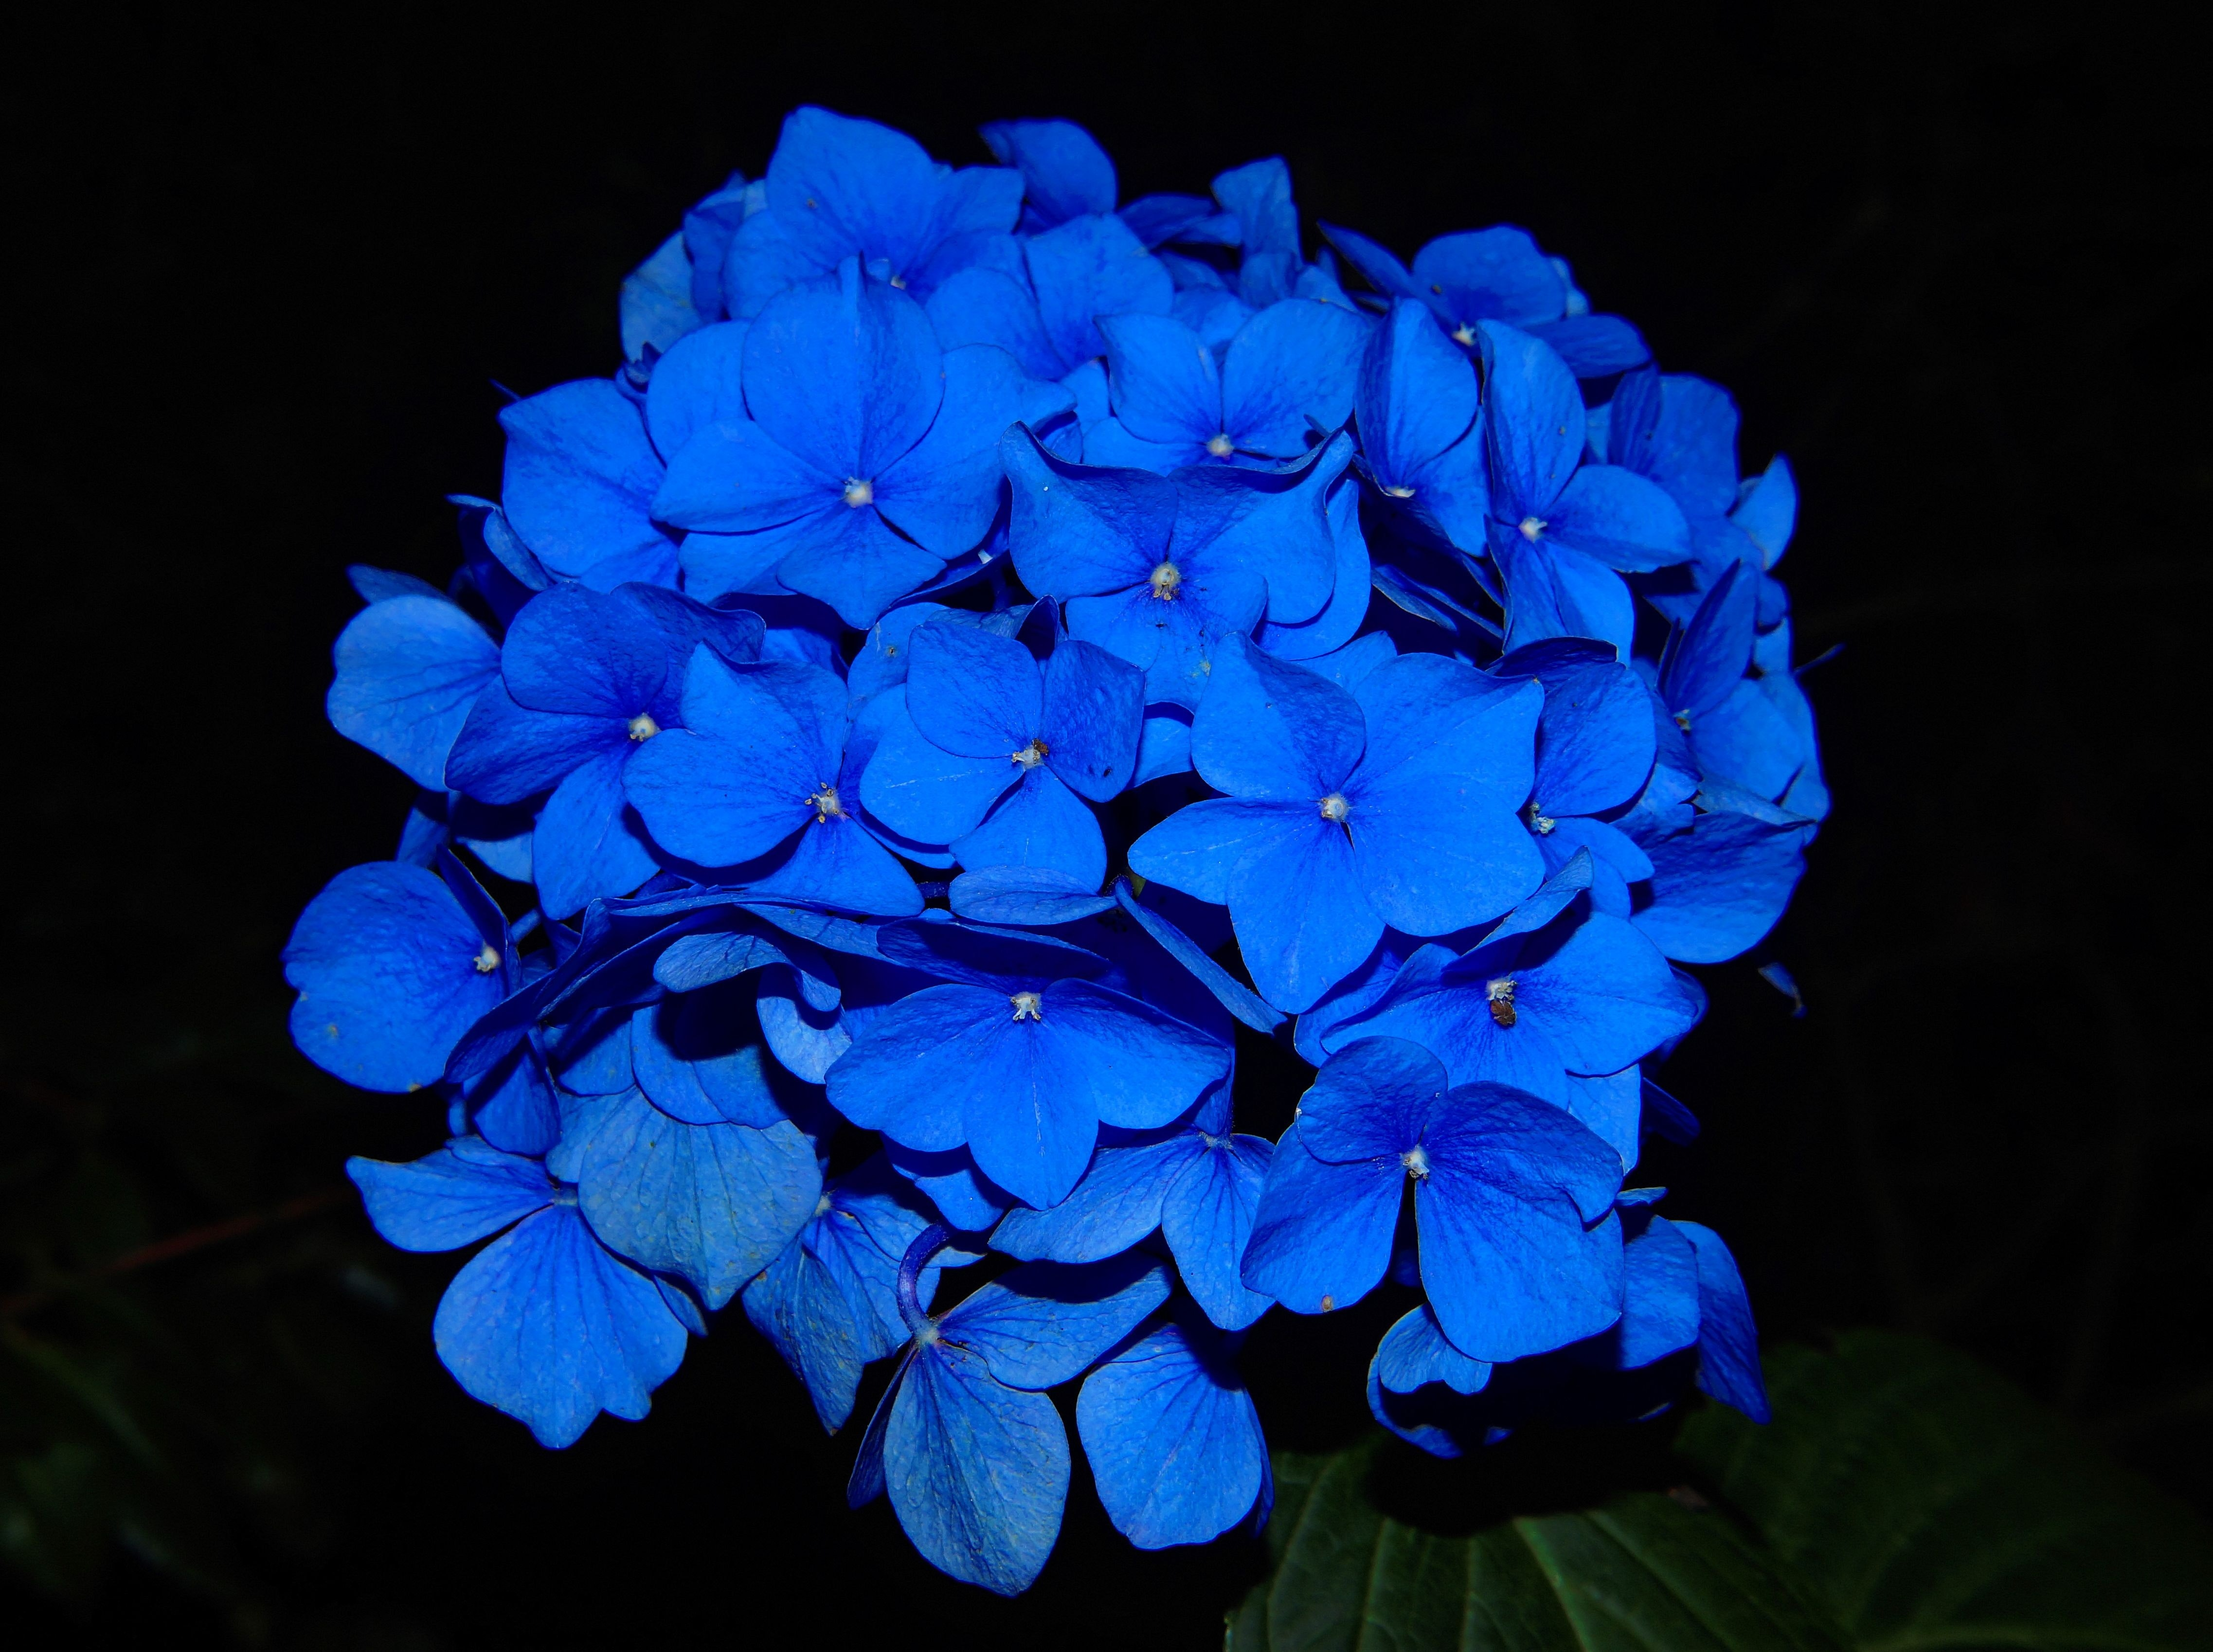 Free stock photos of blue flowers pexels search for colors eg color blue izmirmasajfo Image collections